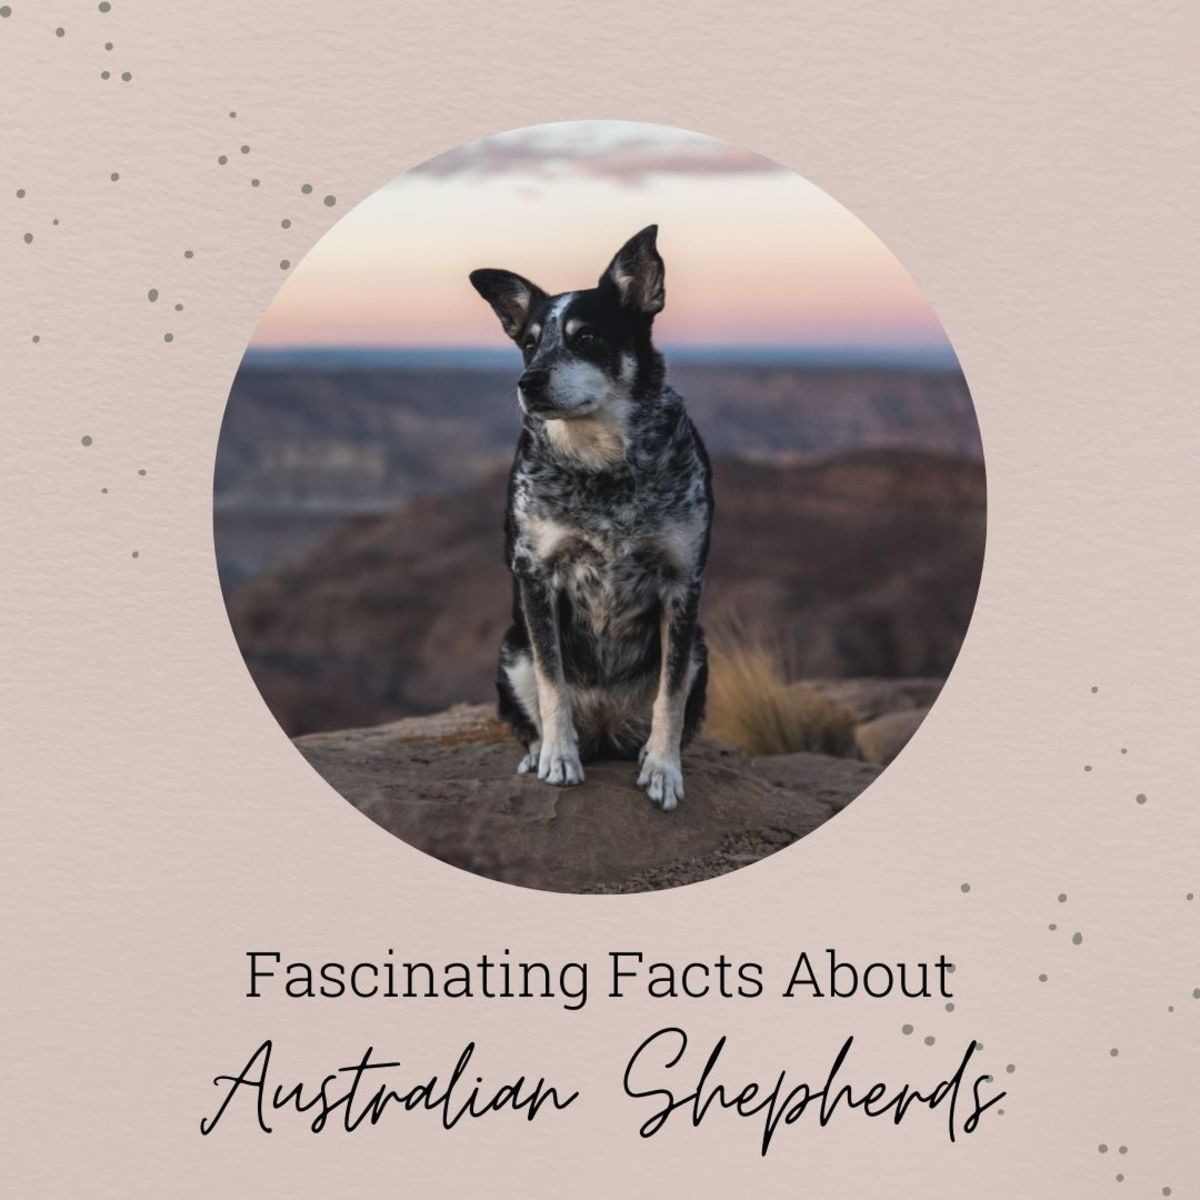 All about the Australian Shepherd breed, including interesting facts you may not know